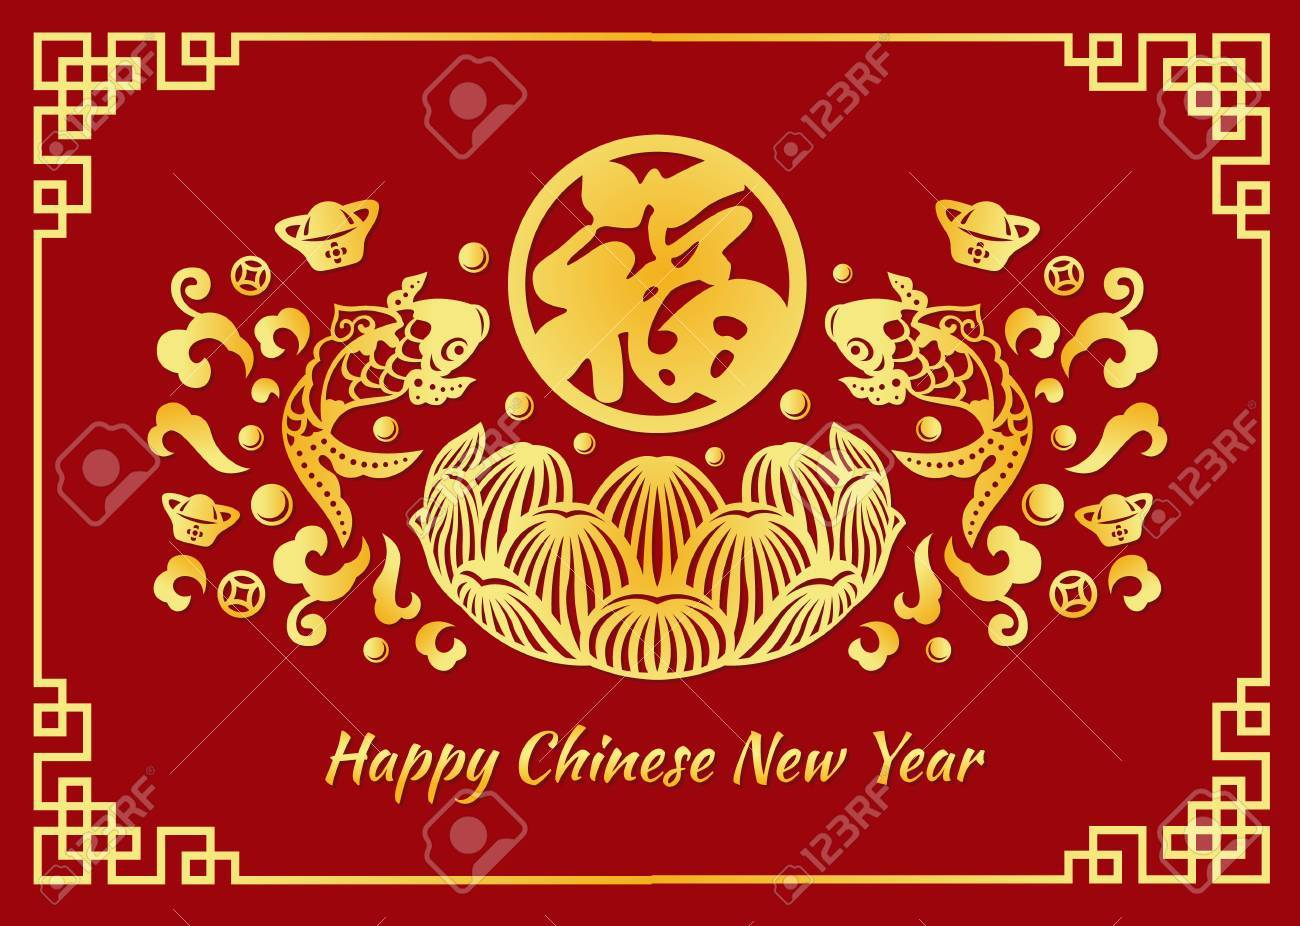 Happy Chinese New Year Card Is Gold Chinese Word Mean Happiness..